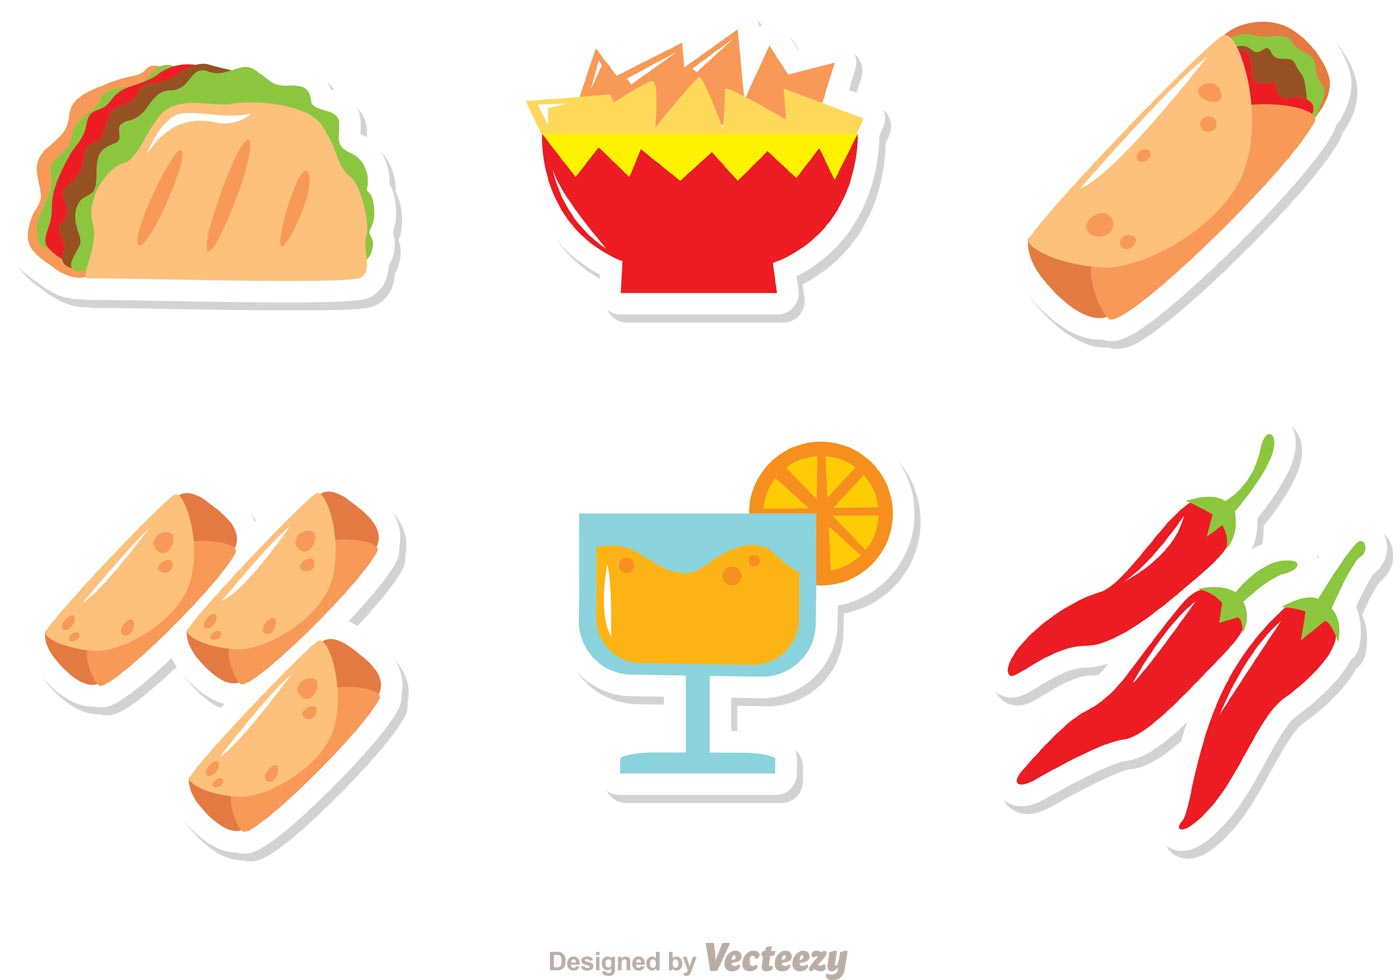 Mexican Food Icons Vectors Pack - Download Free Vector Art, Stock ...